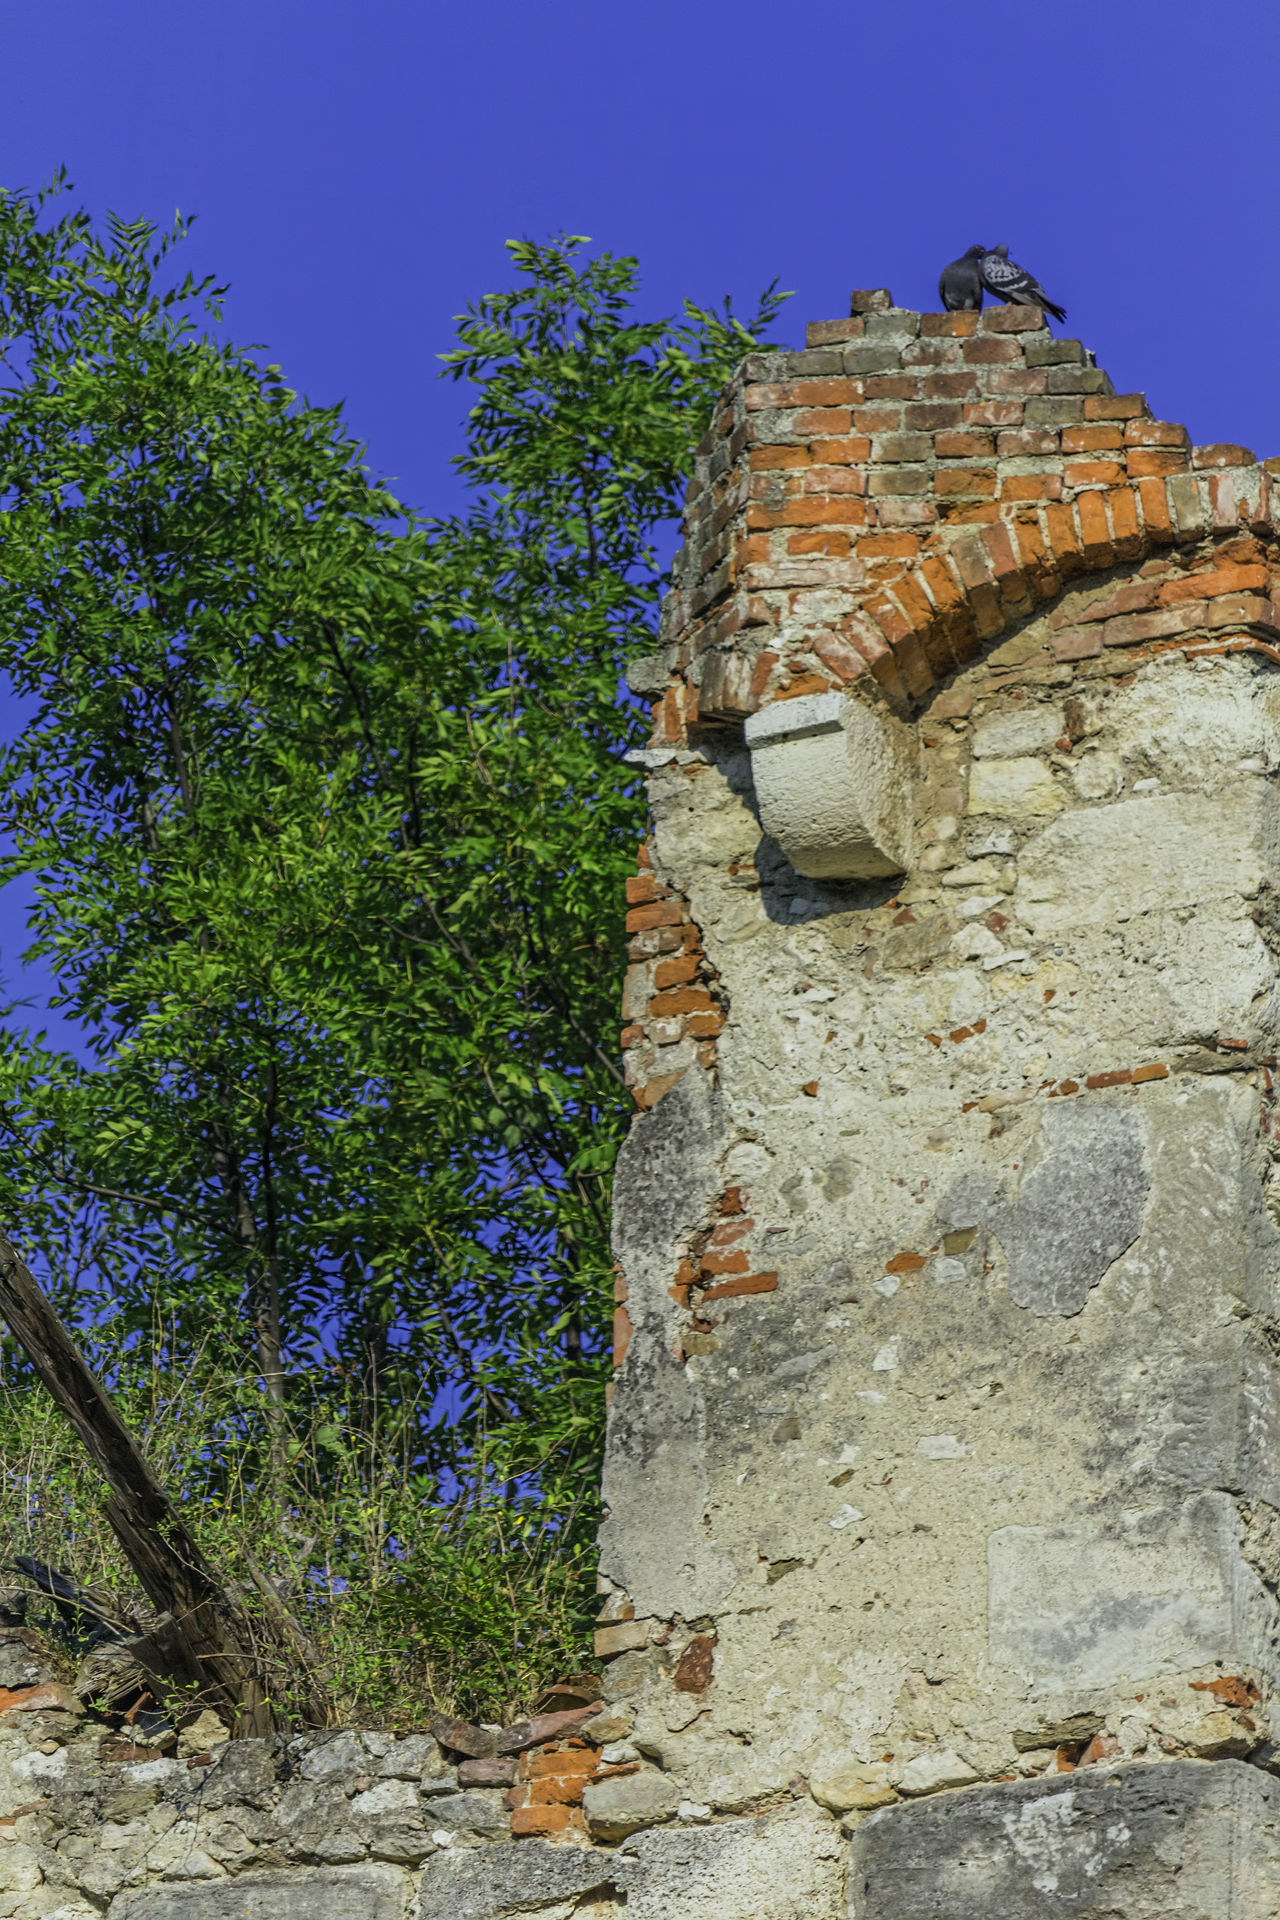 Old Castle Pottendorf Architecture Castle Castle Ruin Lost Place Lost Places Lostplace Lostplaces Nature Old Buildings Ruined Building Ruins Ruins Architecture Rural Scene